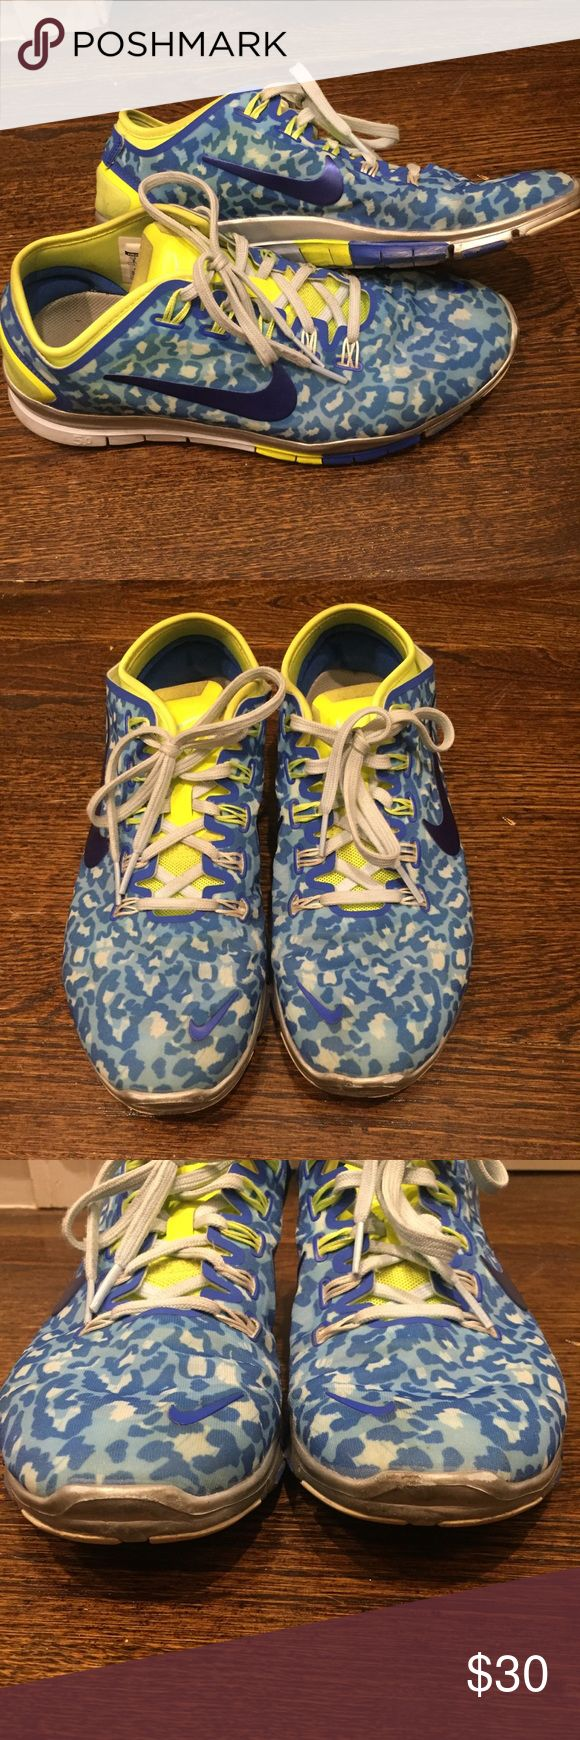 Leopard print Nike free 5.0 running sneakers Lime green and blue leopard print Nike free 5.0 running sneakers. Size 8. Only worn to an inside gym. Also have same pair in a silver and black leopard print. Nike Shoes Athletic Shoes